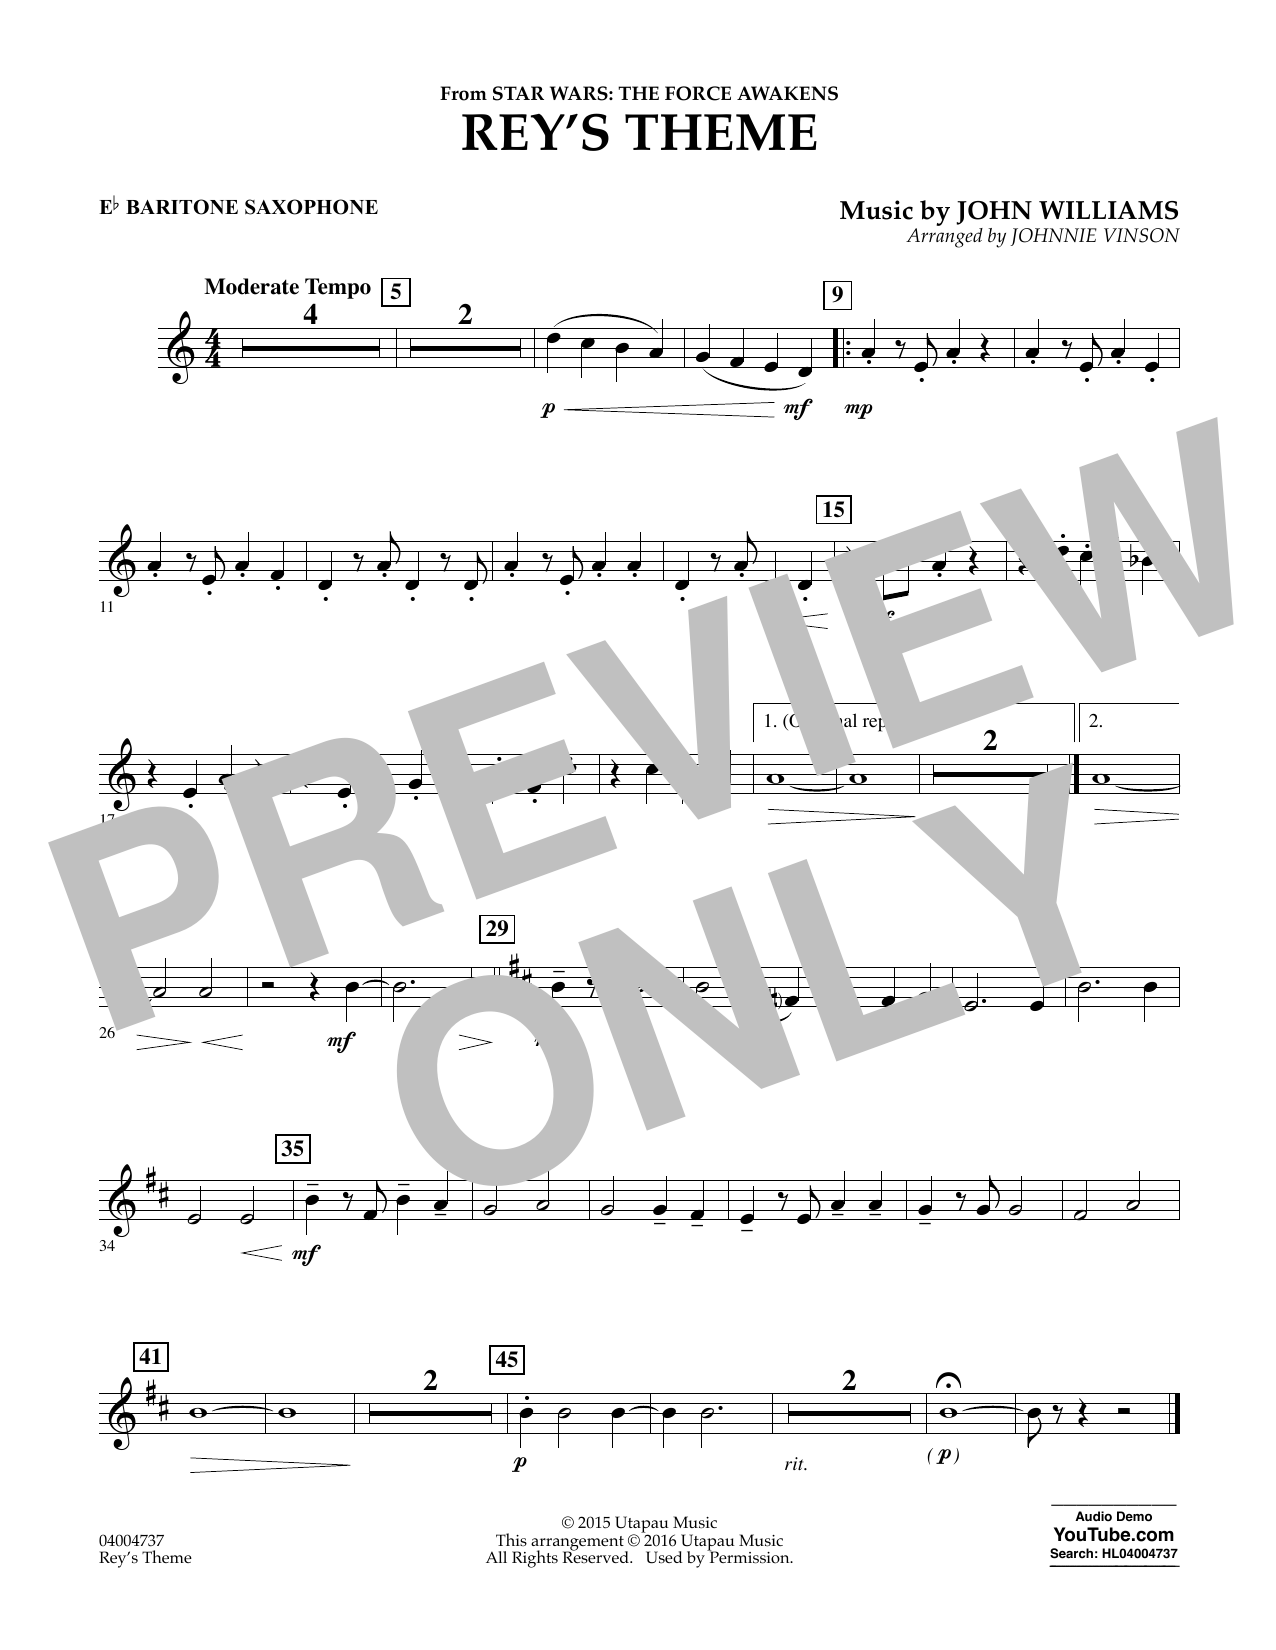 Rey's Theme (from Star Wars: The Force Awakens) - Eb Baritone Saxophone (Concert Band)